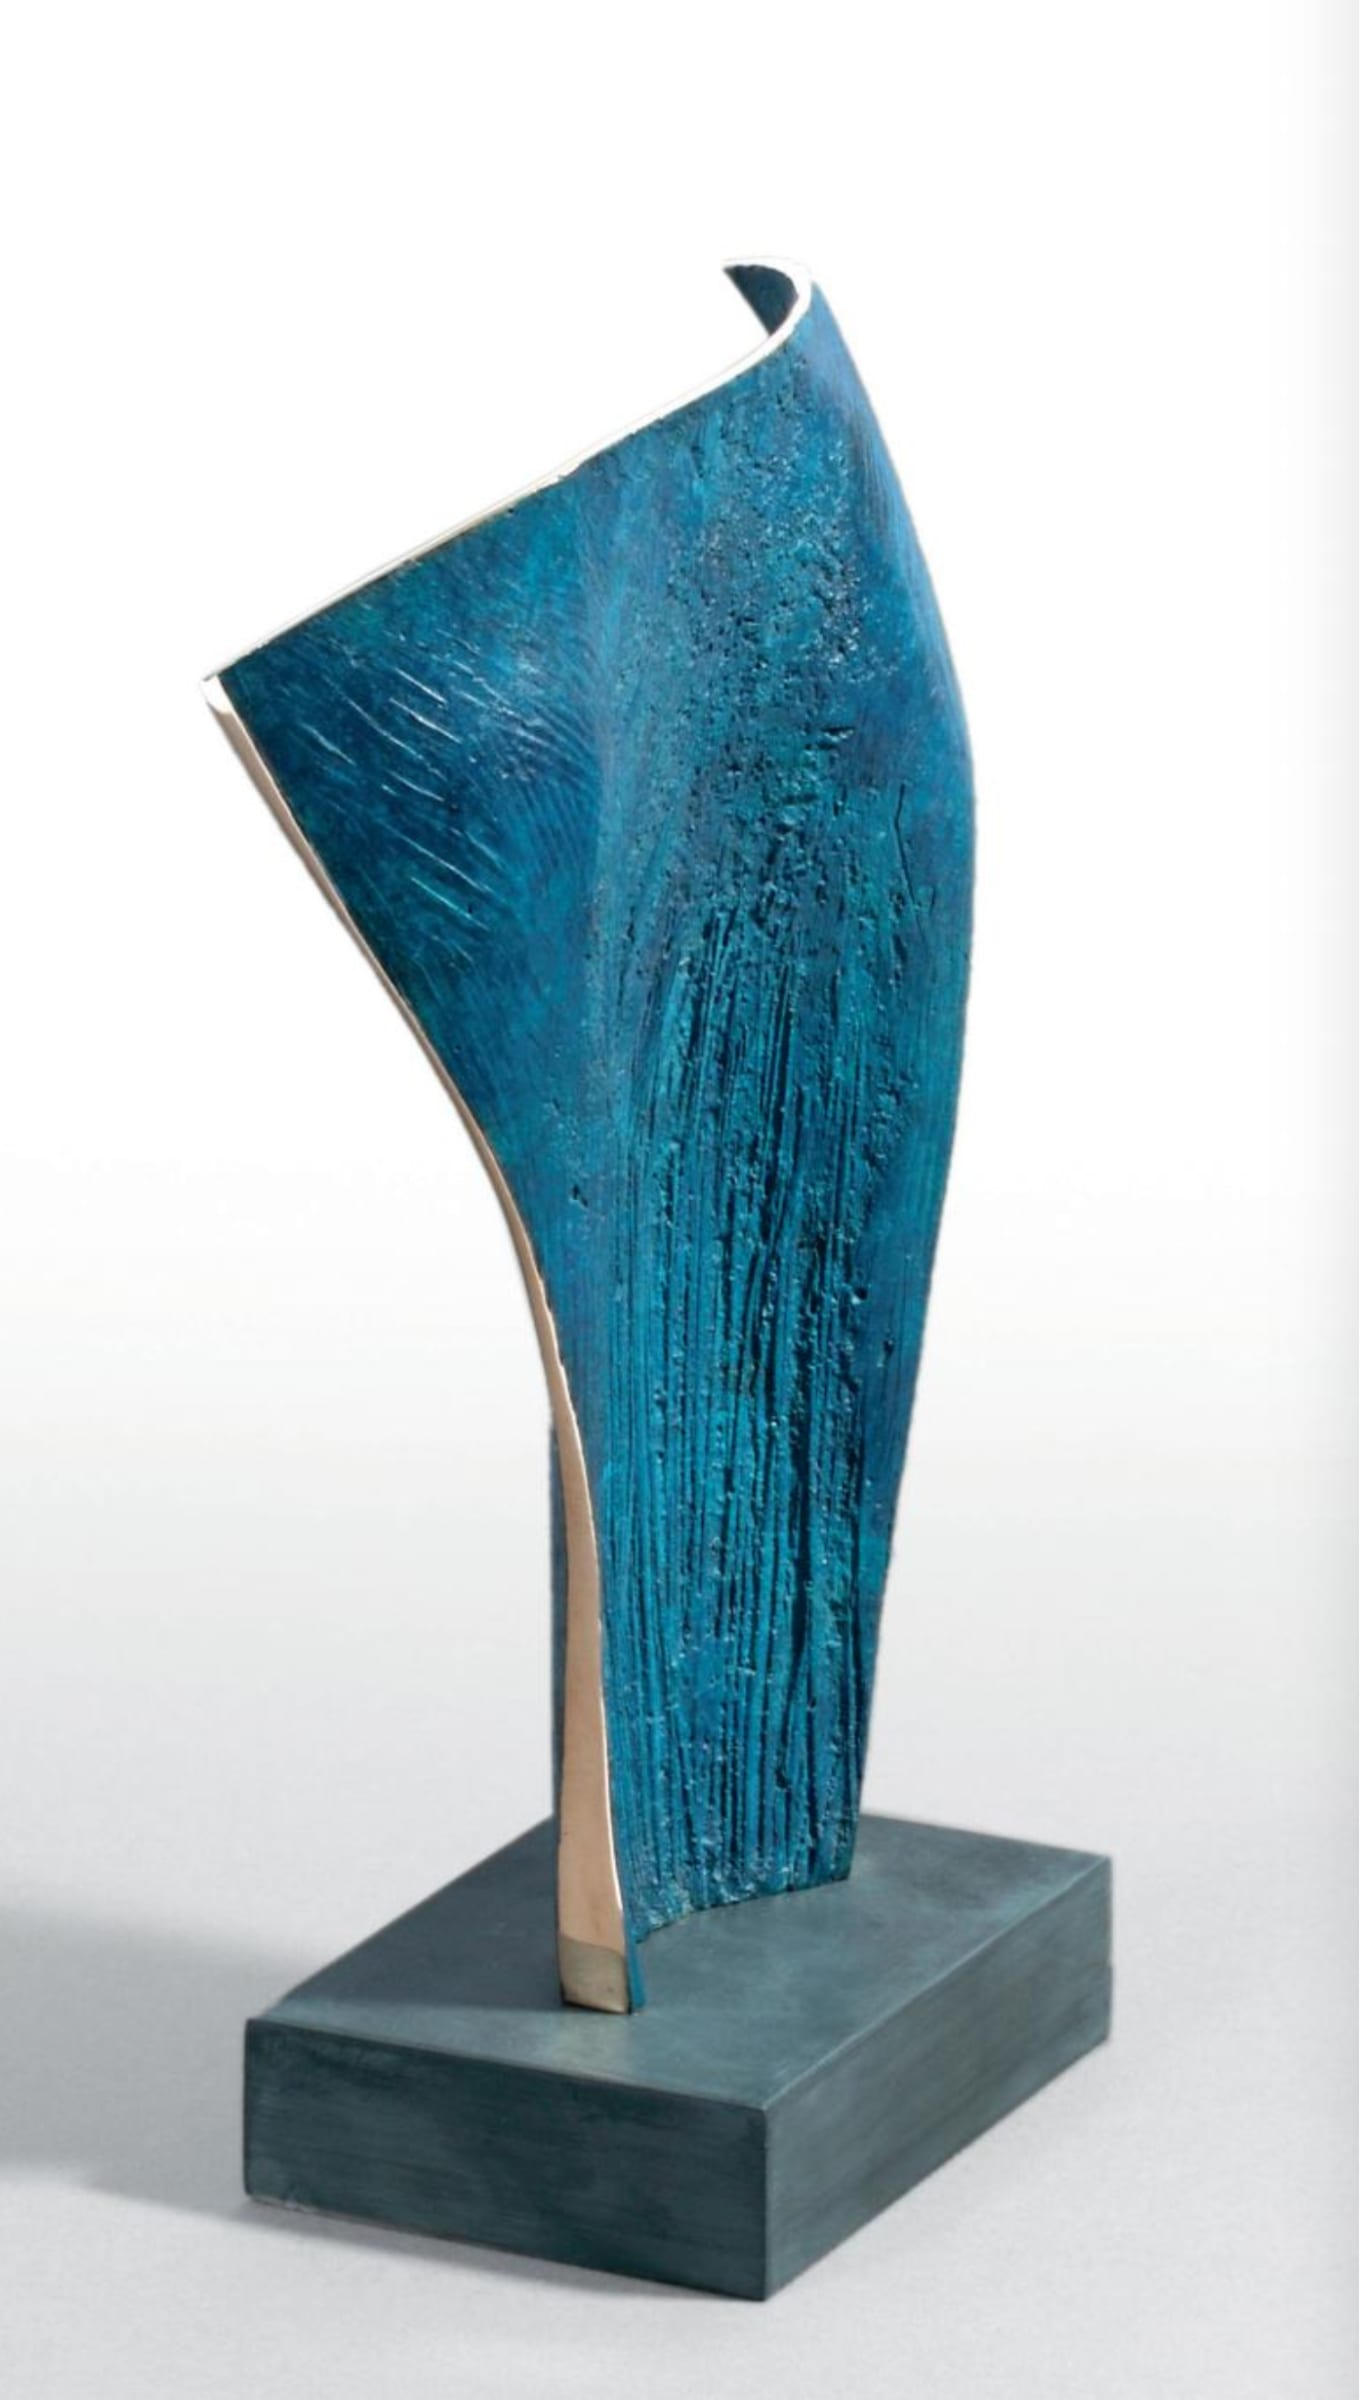 """<span class=""""link fancybox-details-link""""><a href=""""/artists/69-margaret-lovell-d.litt.-hon-frbs-rwa/works/5671-margaret-lovell-d.litt.-hon-frbs-rwa-eleftheria-2008/"""">View Detail Page</a></span><div class=""""artist""""><strong>Margaret Lovell D.Litt. Hon FRBS RWA</strong></div> b. 1939 <div class=""""title""""><em>Eleftheria</em>, 2008</div> <div class=""""signed_and_dated"""">signed and stamped by the artist '3/6'</div> <div class=""""medium"""">cast bronze (patinated) on granite base</div> <div class=""""dimensions"""">25 x 15 x 8 cm<br /> 9 7/8 x 5 7/8 x 3 1/8 in</div> <div class=""""edition_details"""">edition 3 of 6</div><div class=""""price"""">£2,600.00</div><div class=""""copyright_line"""">Own Art: £ 250 x 10 Months, 0% APR + £ 100 deposit</div>"""